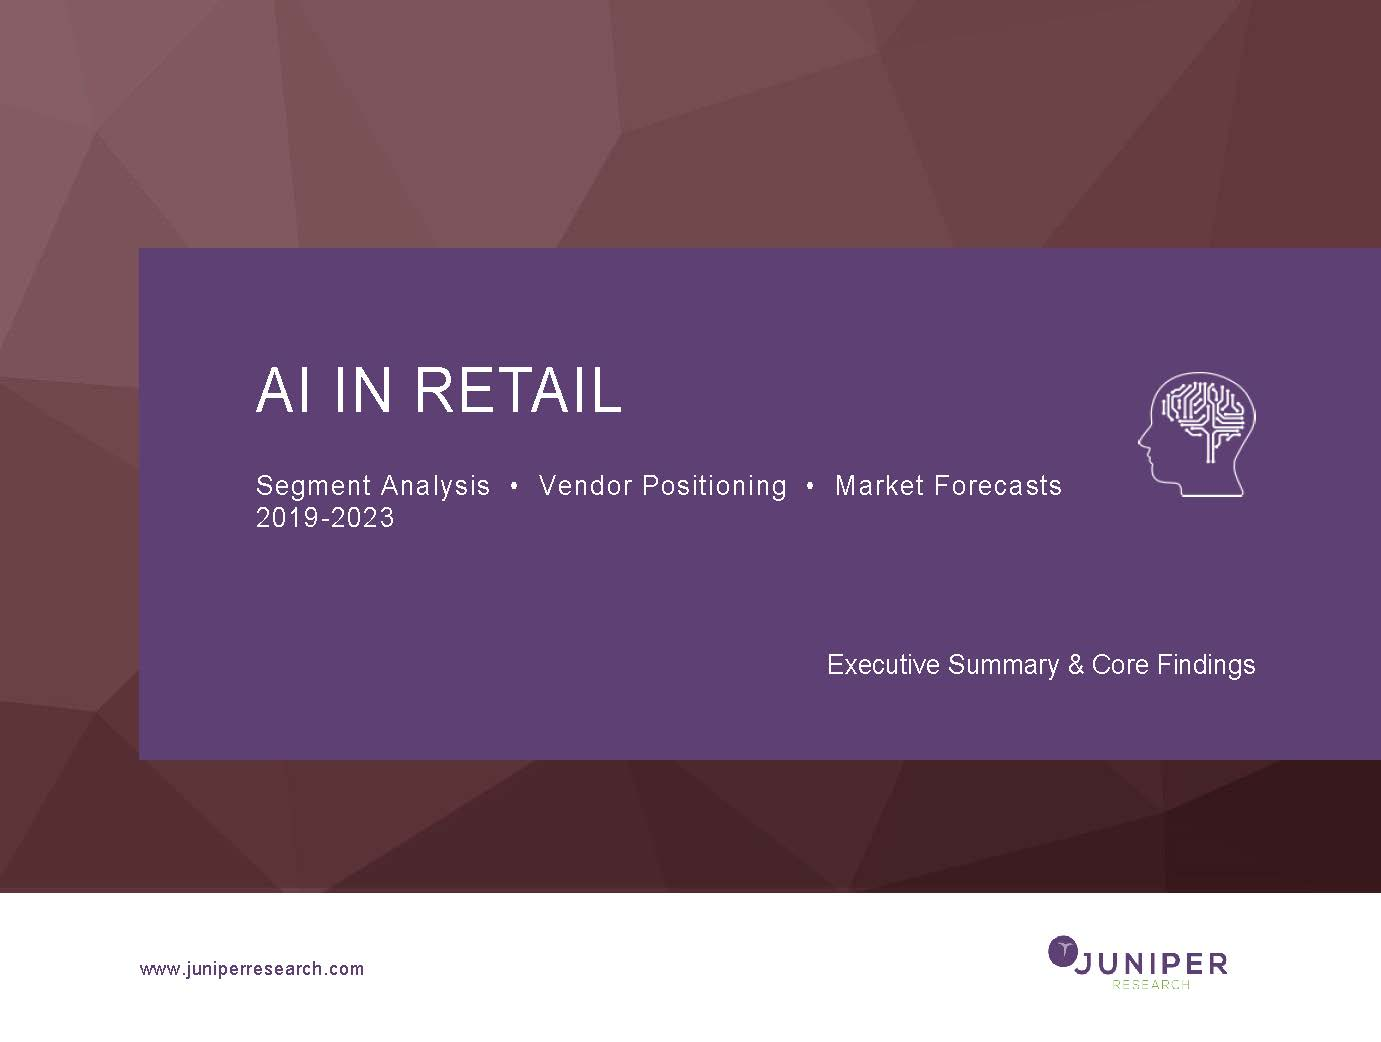 AI in Retail: Executive Summary & Core Findings 2019-2023